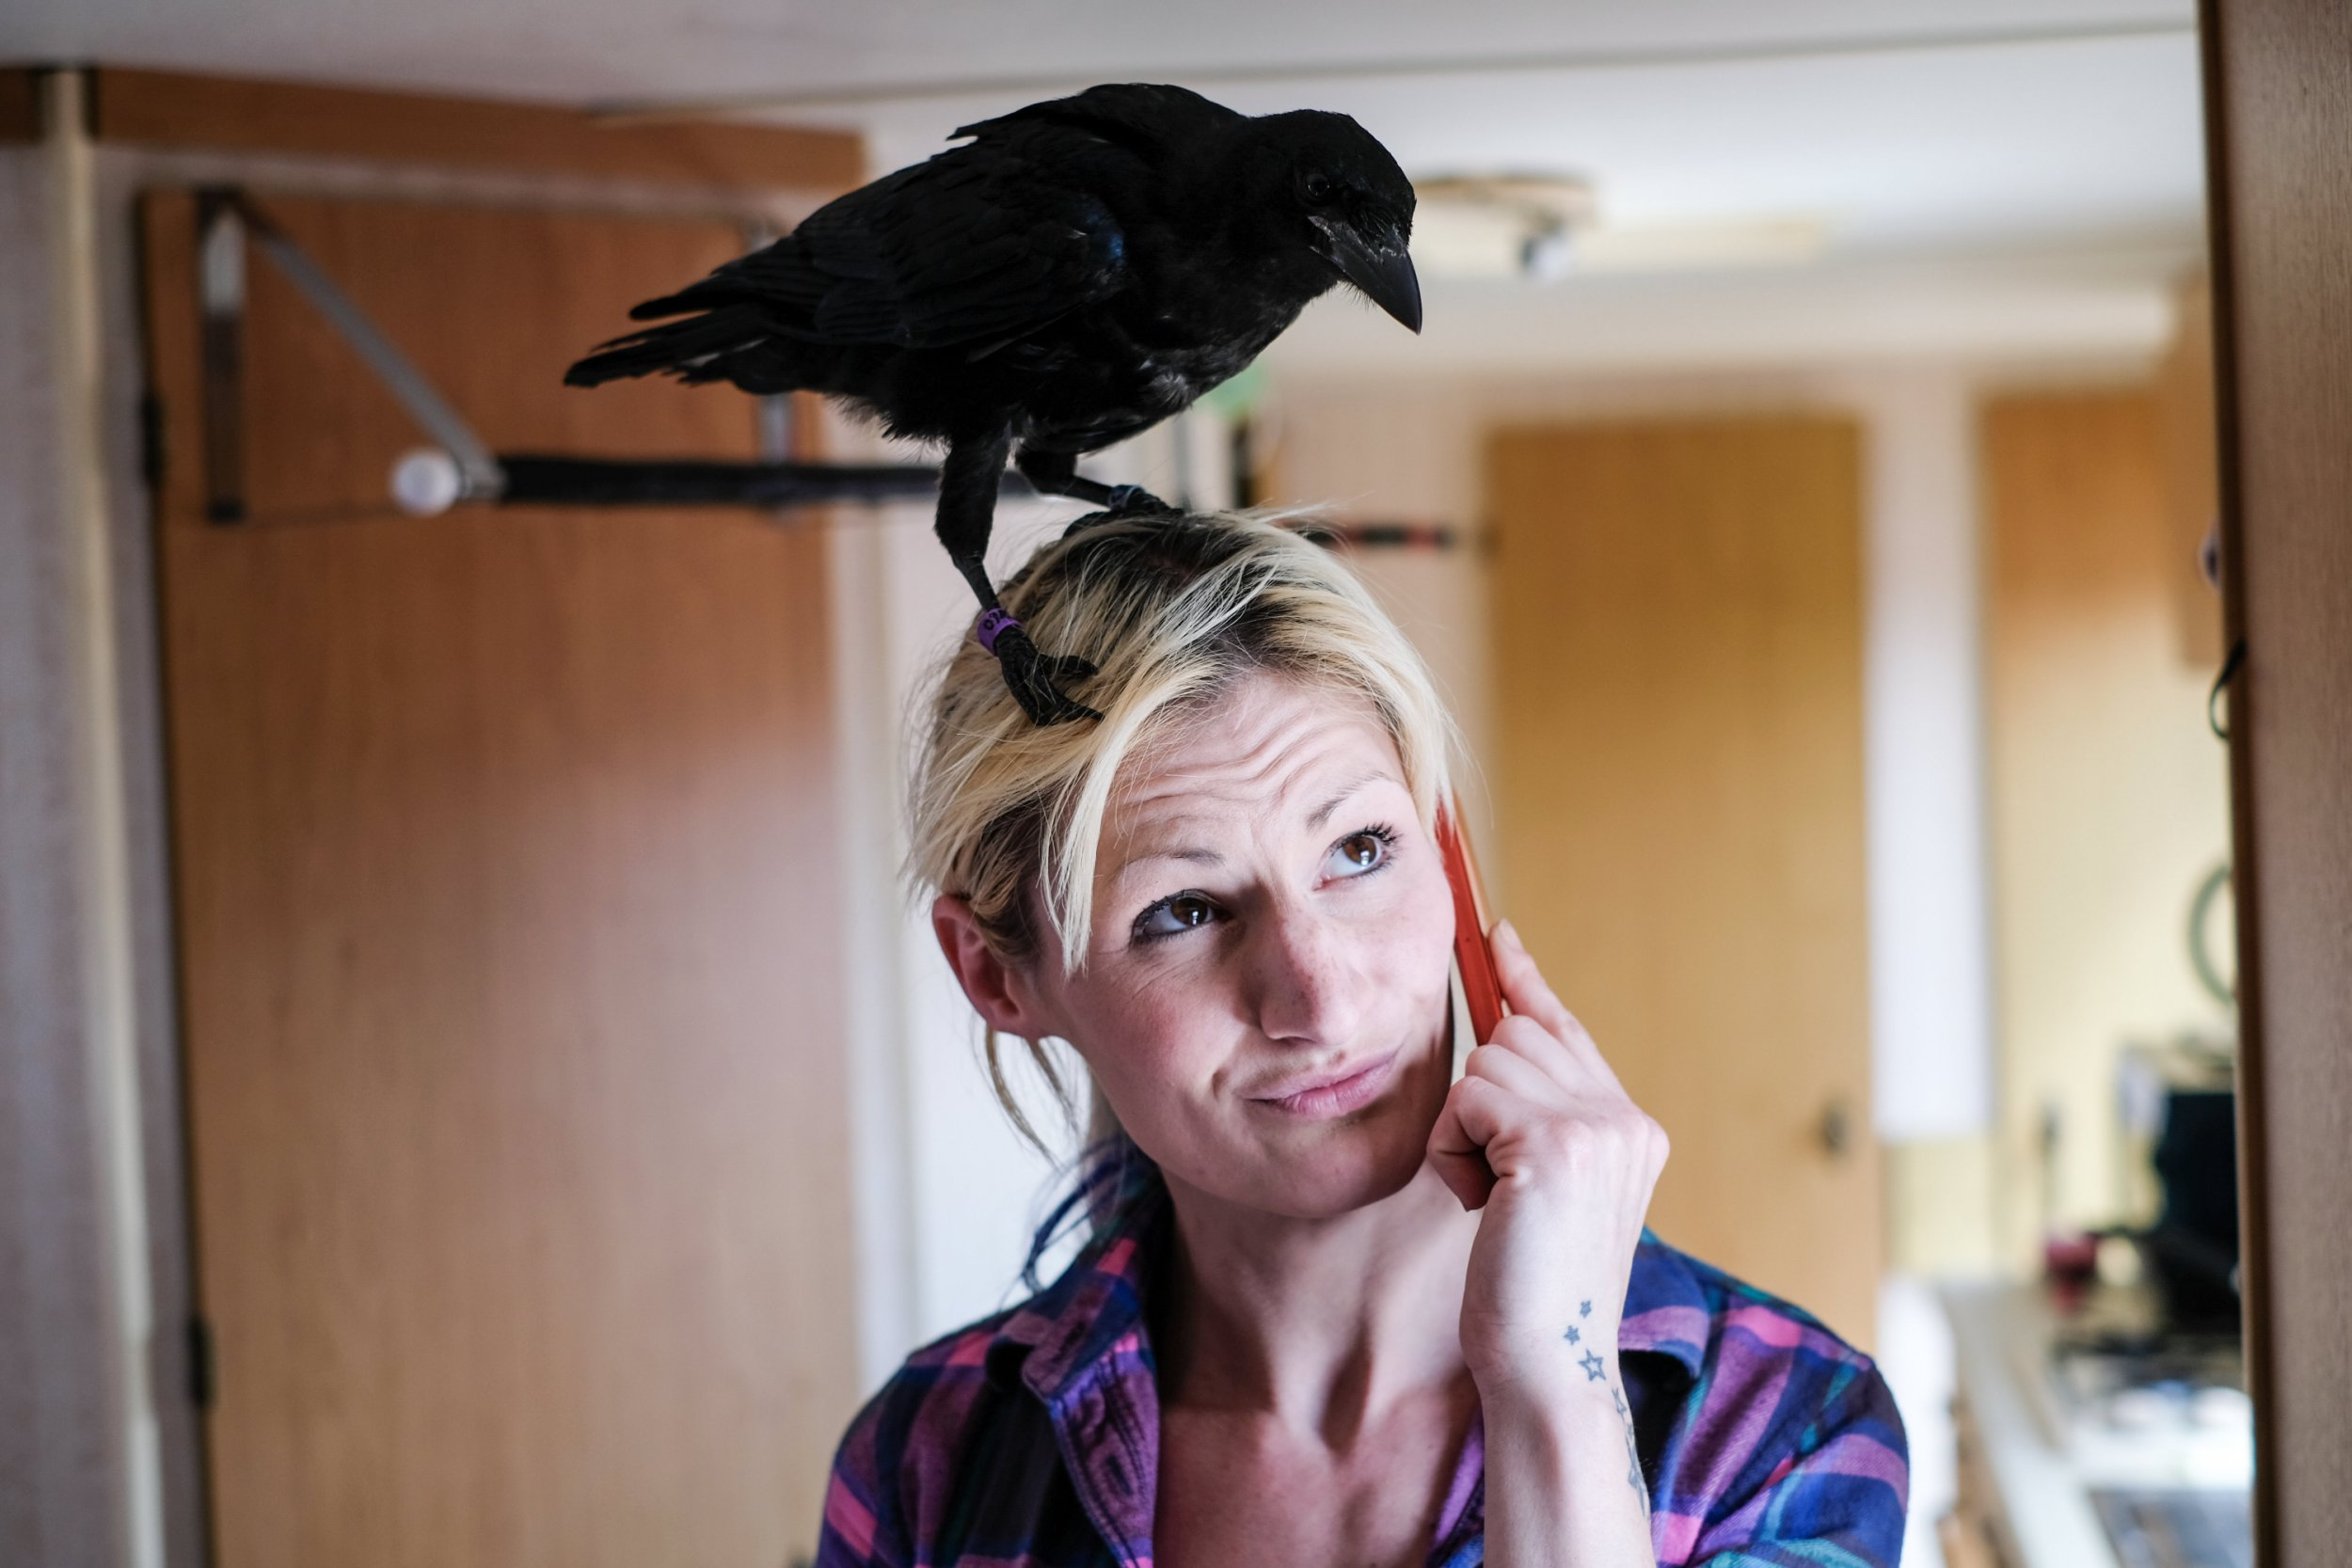 Vikkie Kenward with Fagin the crow who she took in after finding him abandoned on the floor 3 months ago. See SWNS story SWCROW; A woman who raised an orphaned baby crow says it won't leave her side three months on - and claims it watches TV with her, comes when called and is learning to TALK. Vikkie Kenward, 29, adopted the little bird in May after it fell out of its mother's nest and was left abandoned on a roadside. She called it Fagin - after the pickpocket in Oliver Twist - and hand-reared the new arrival, feeding it every 15 minutes and letting it nestle in the hood of her jumper. As Vikkie's new pet grew healthier, stronger and older, she expected it to spread its wings and fly away from her home, in Horsham, West Sussex.